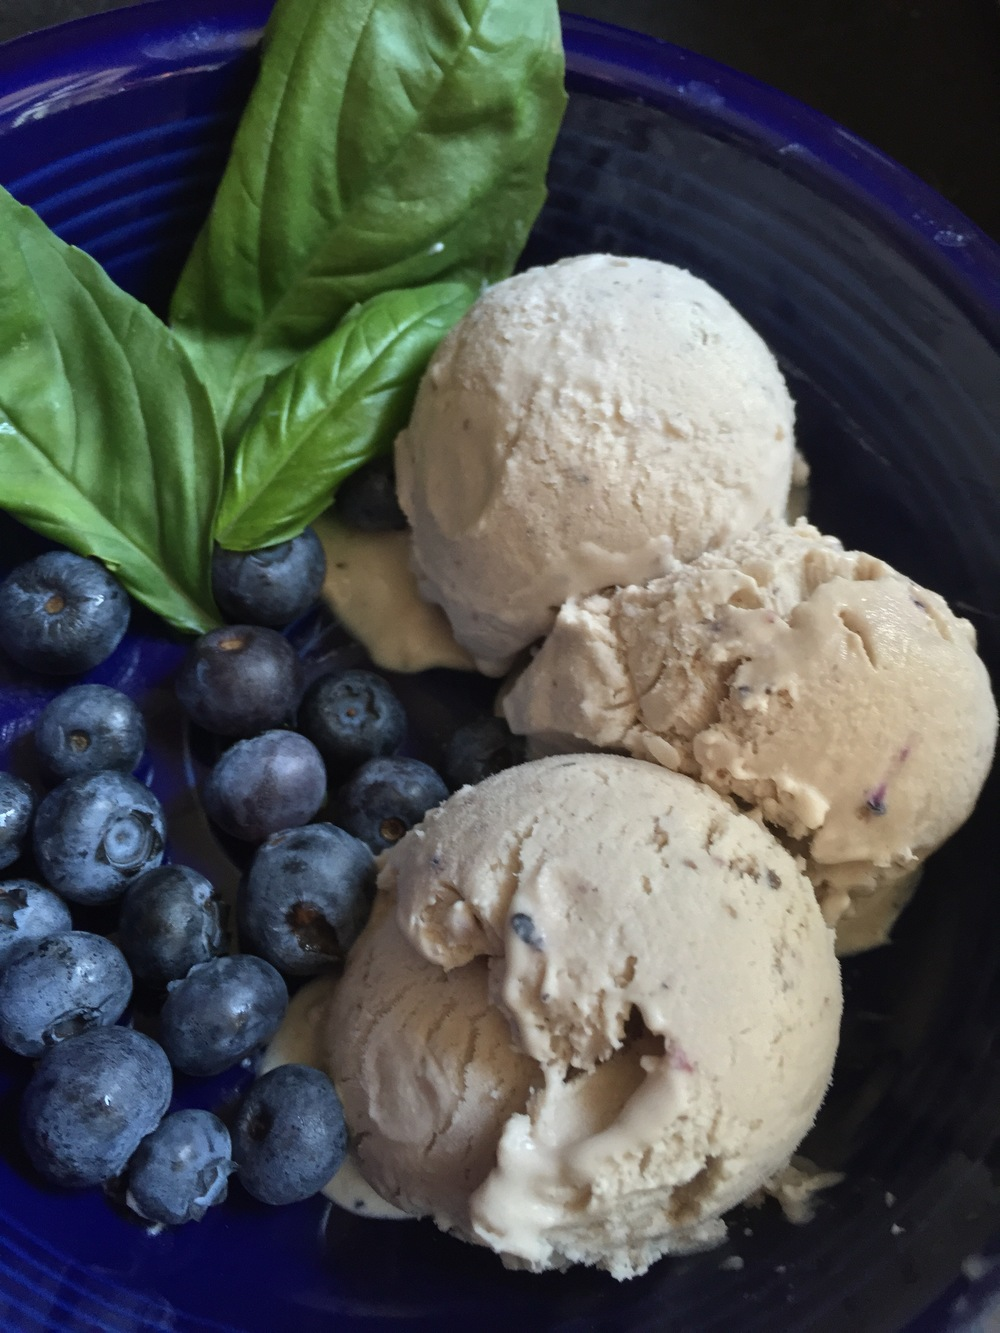 The finished product, styled very informally: triple berry basil ice cream